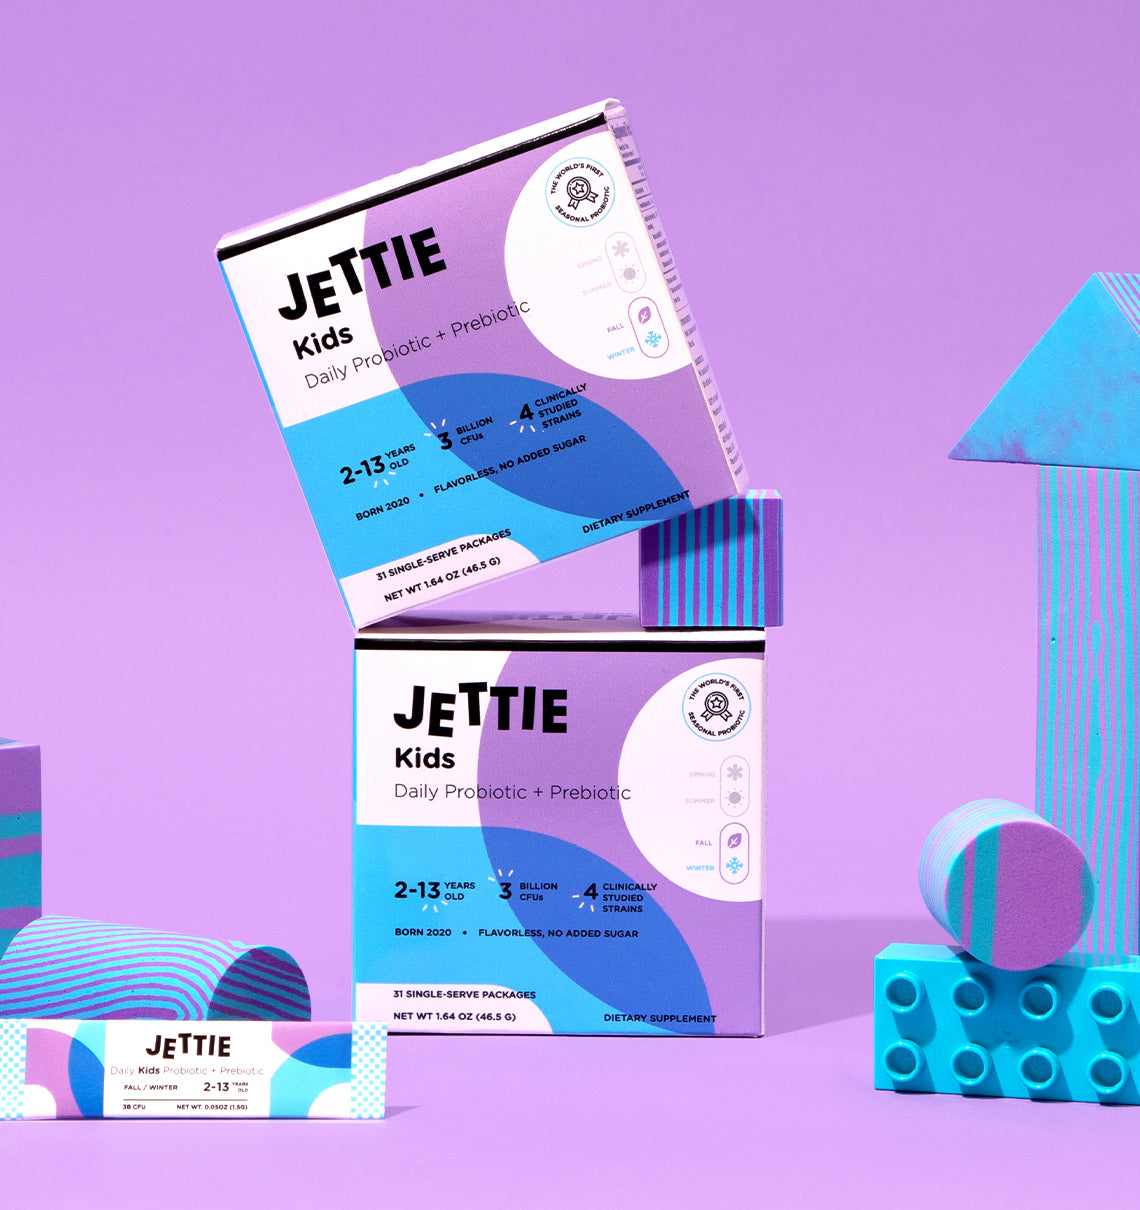 Jettie Kids Probiotic & Prebiotic for Fall/Winter